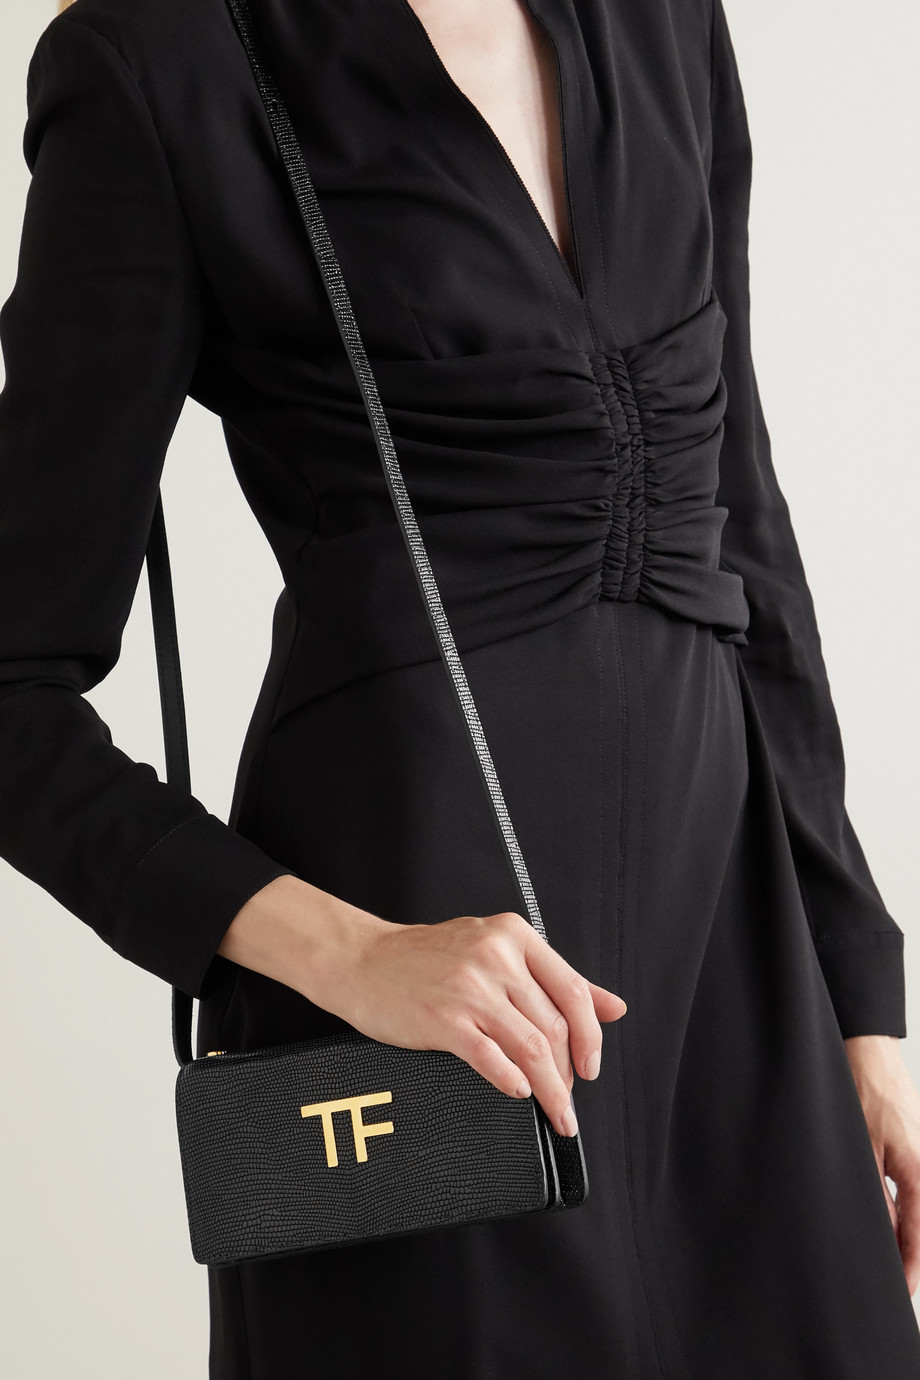 TOM FORD TF mini embellished lizard-effect leather shoulder bag